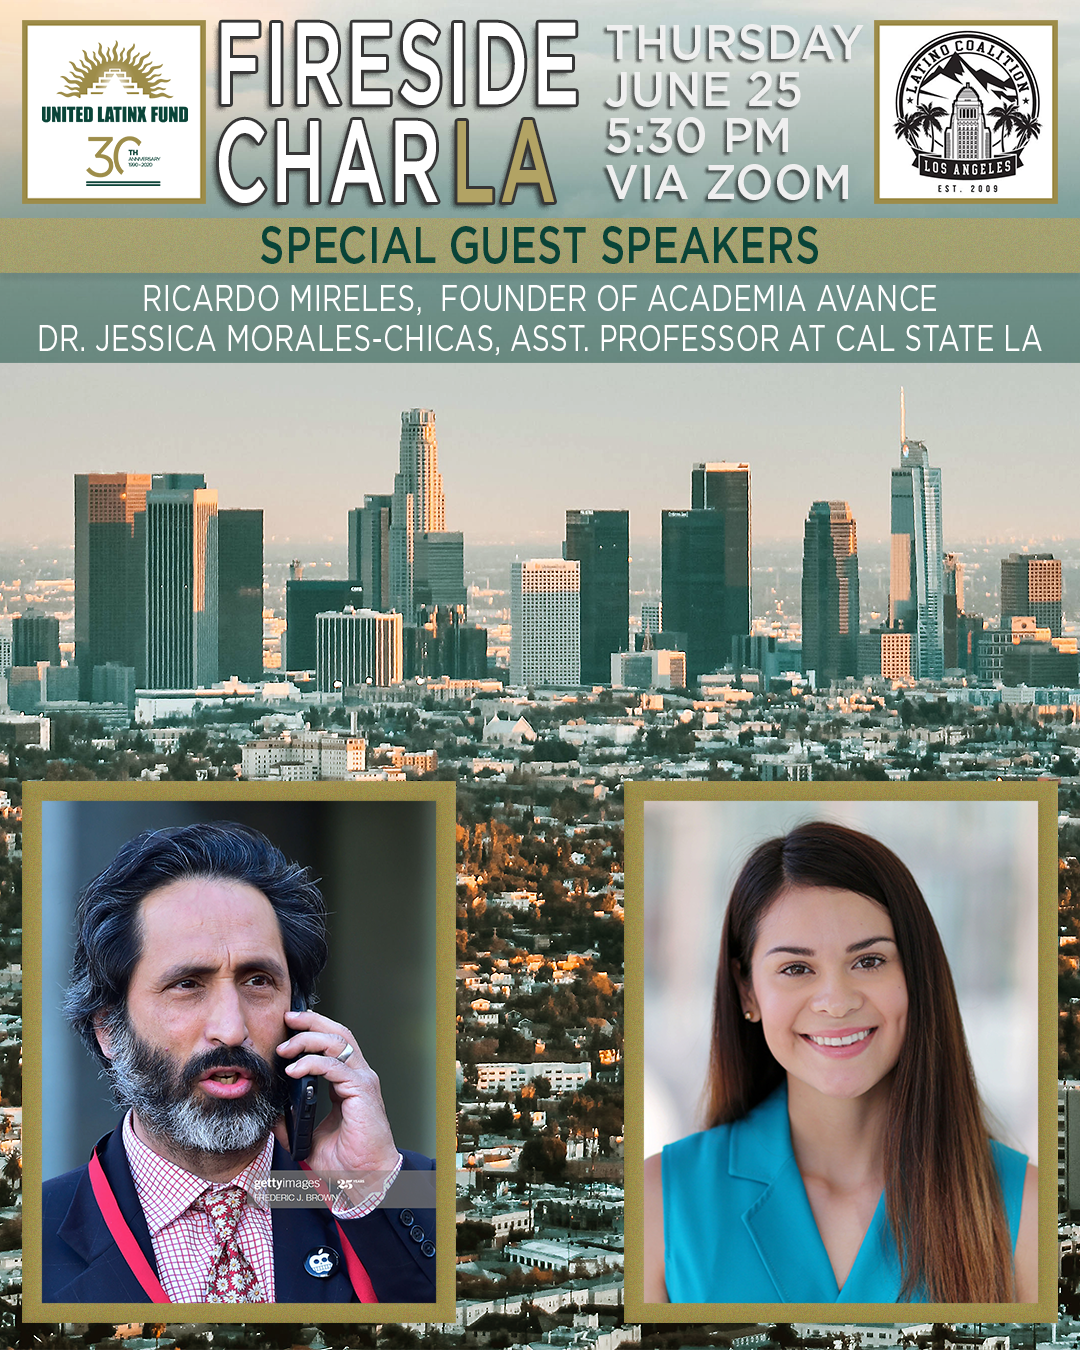 6/25/2020 Fireside CharLA - Featuring Dr. Jessica Morales-Chicas & Ricardo Mireles